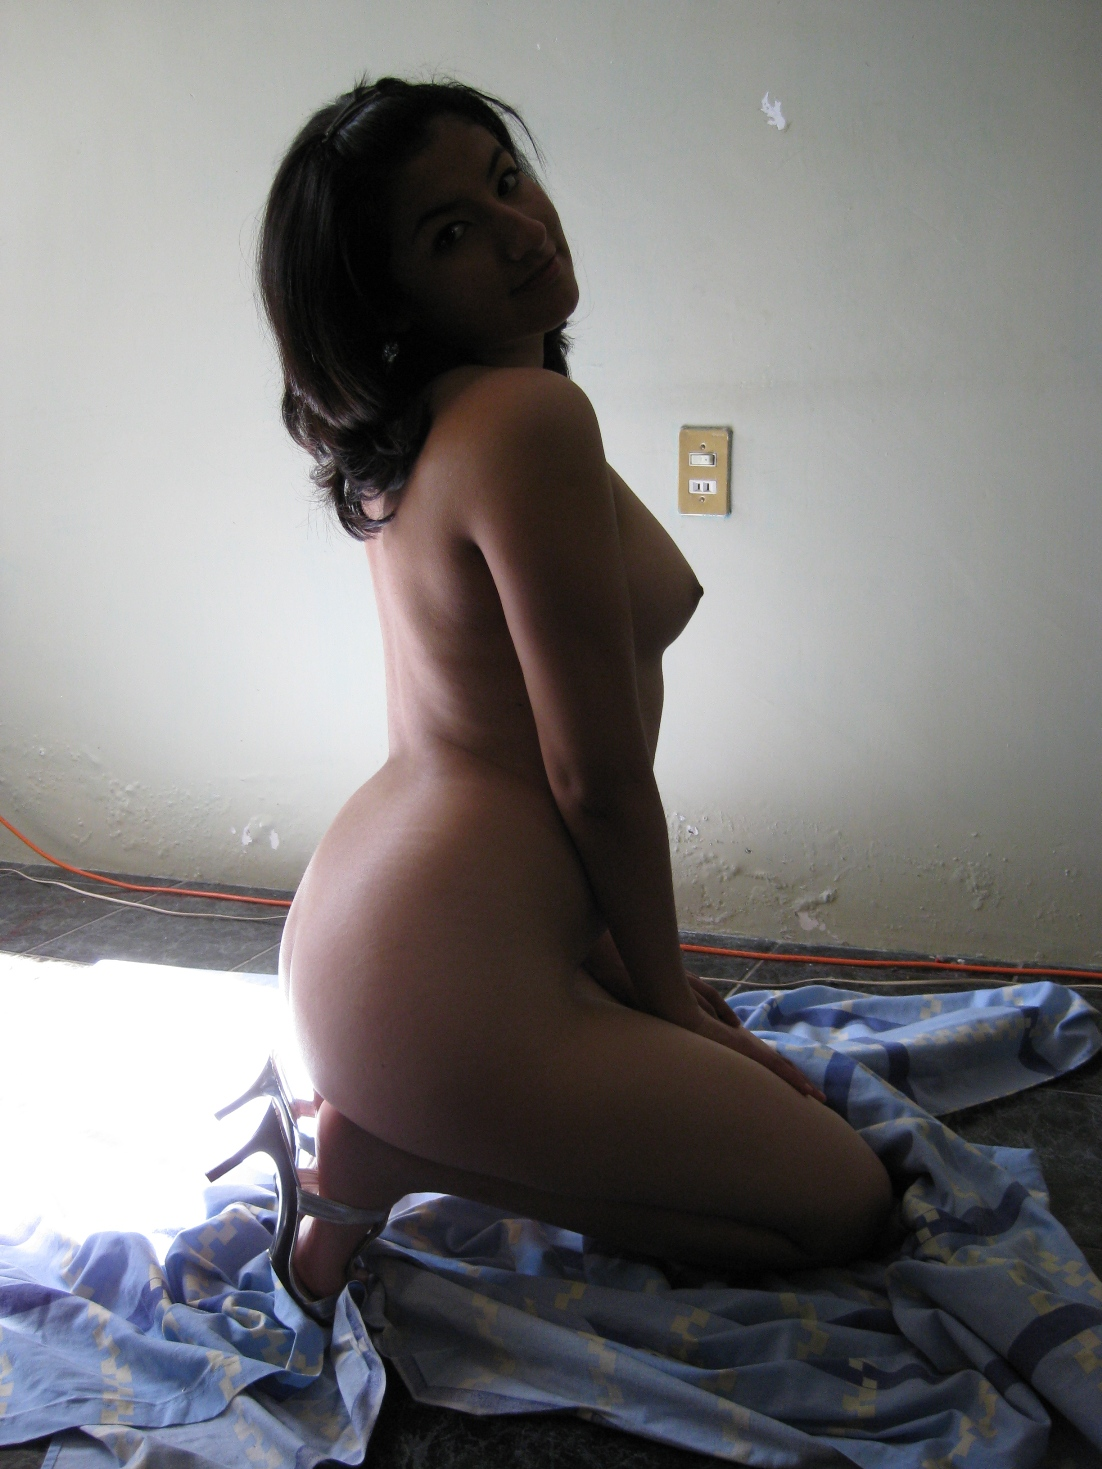 Cute pictures girls of mexican